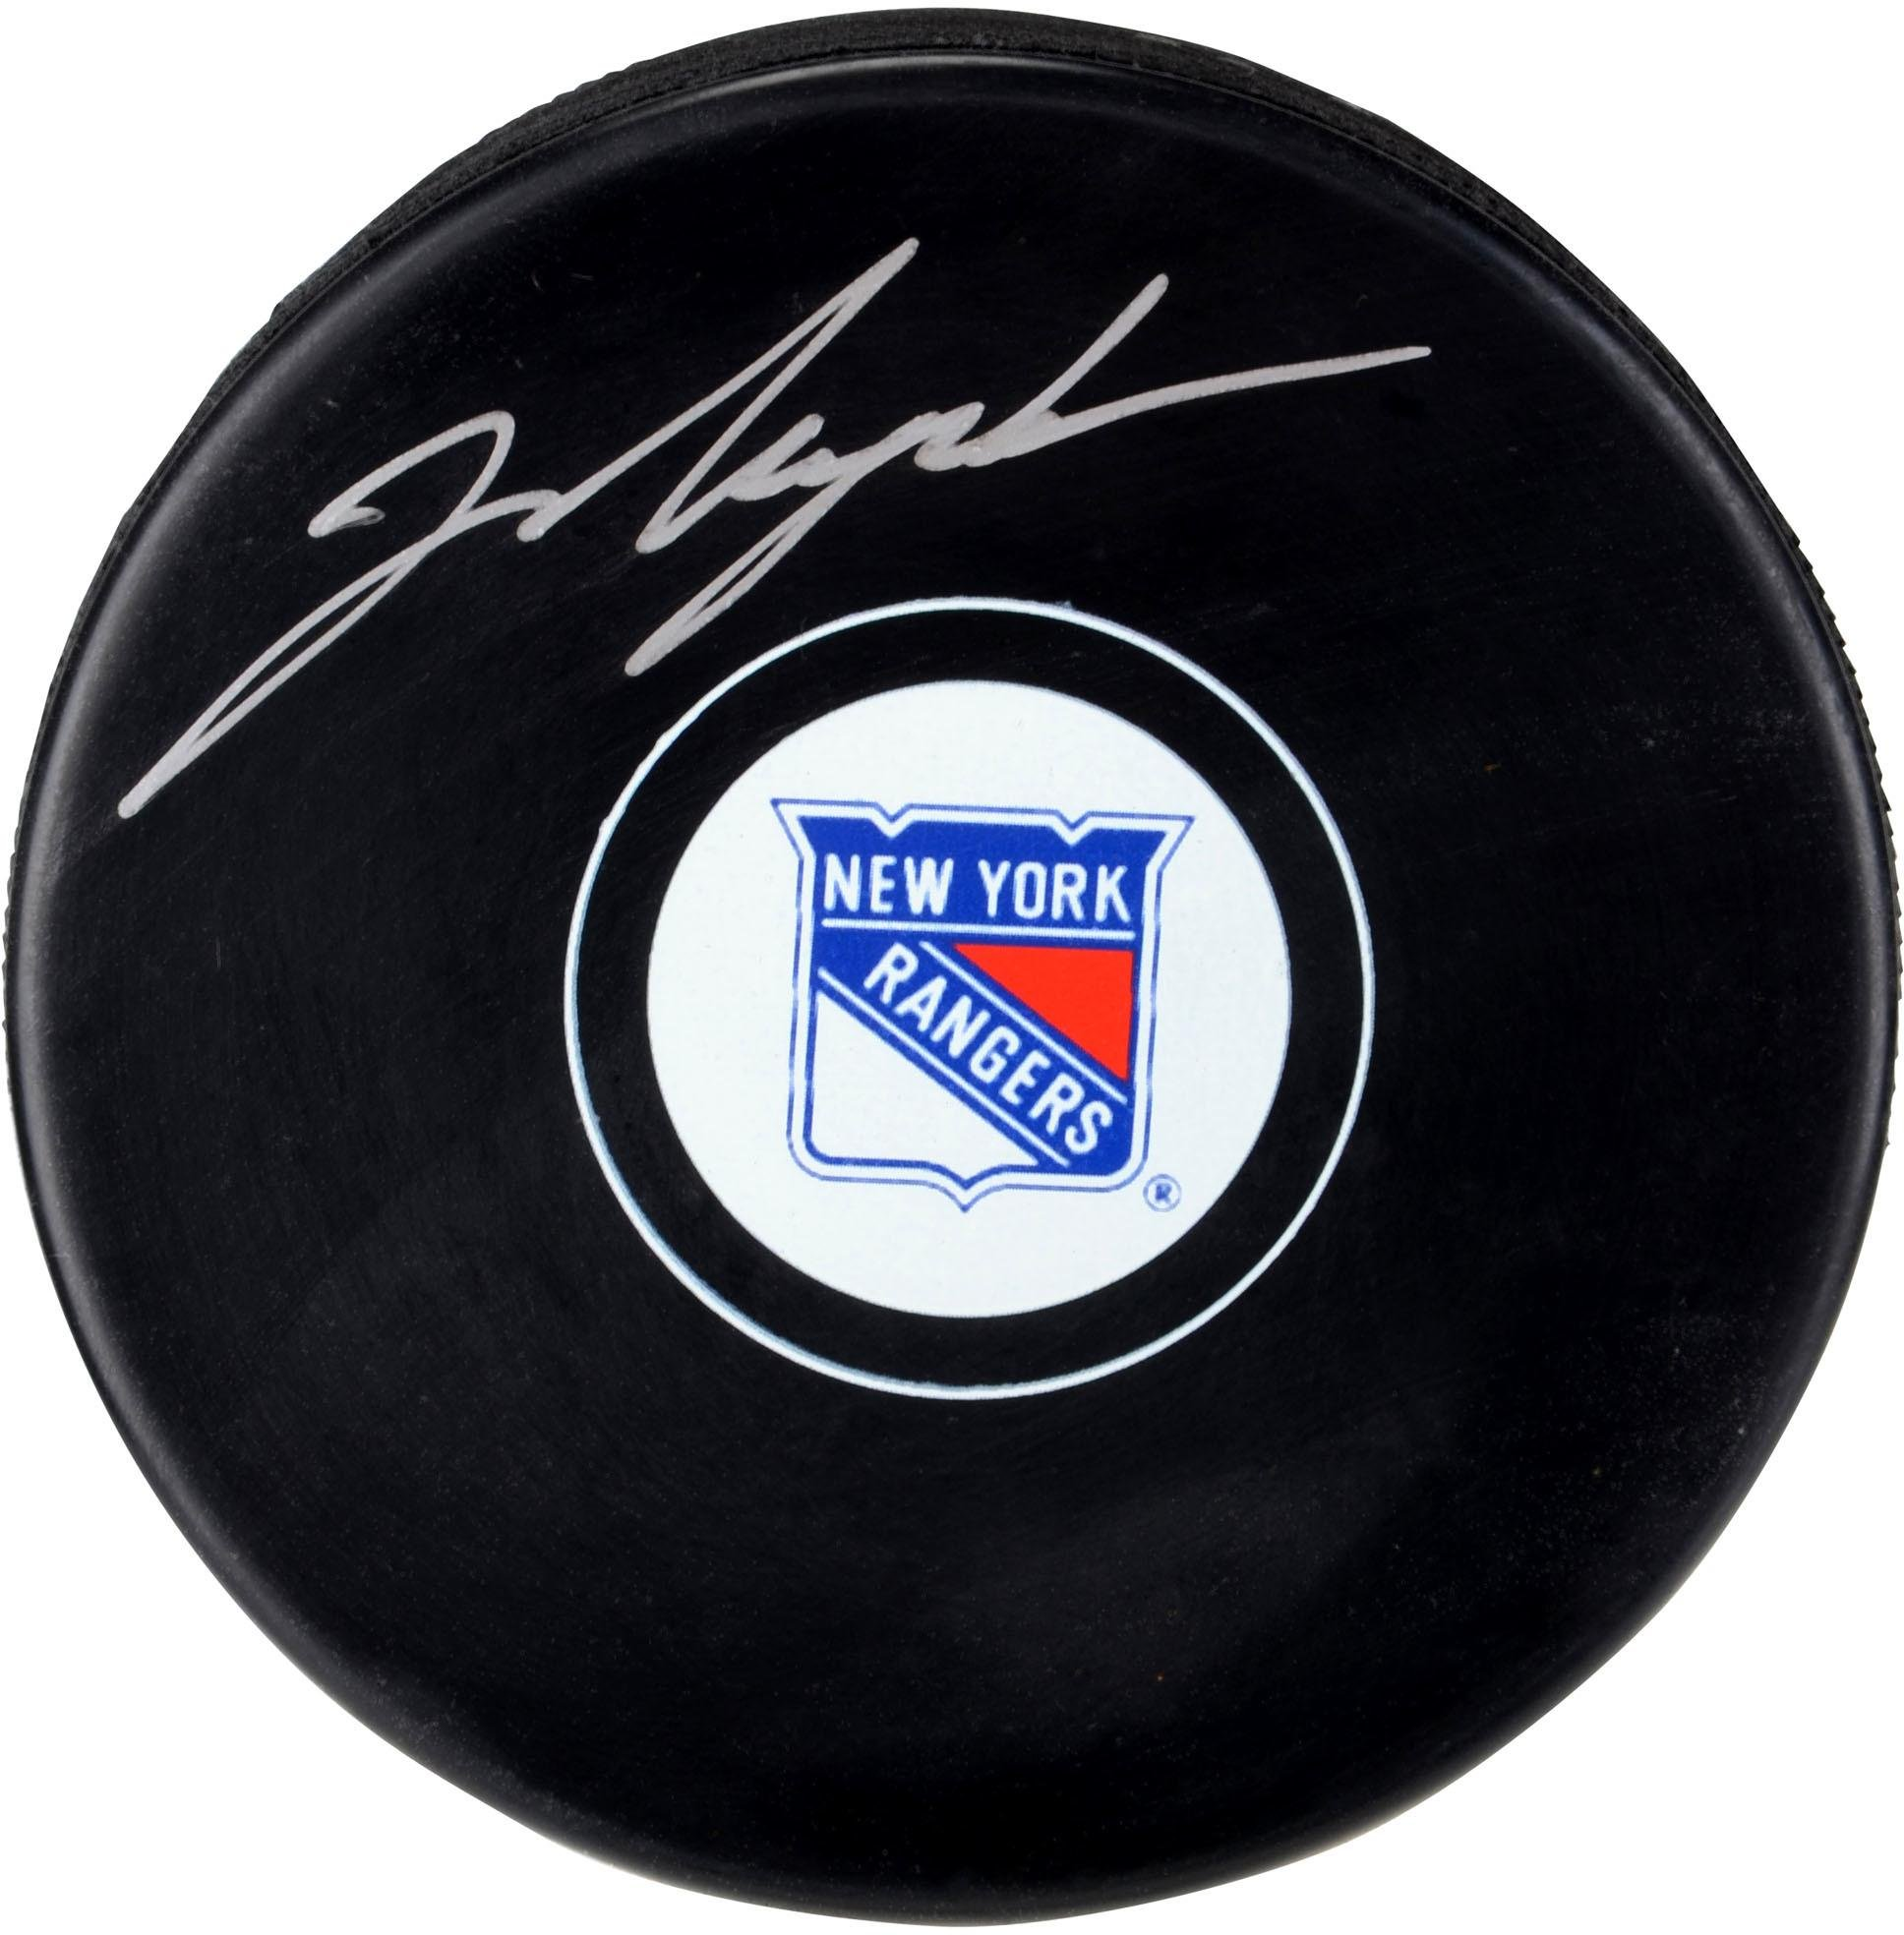 Mark Messier New York Rangers Autographed Hockey Puck Fanatics Authentic Certified Autographed NHL Pucks